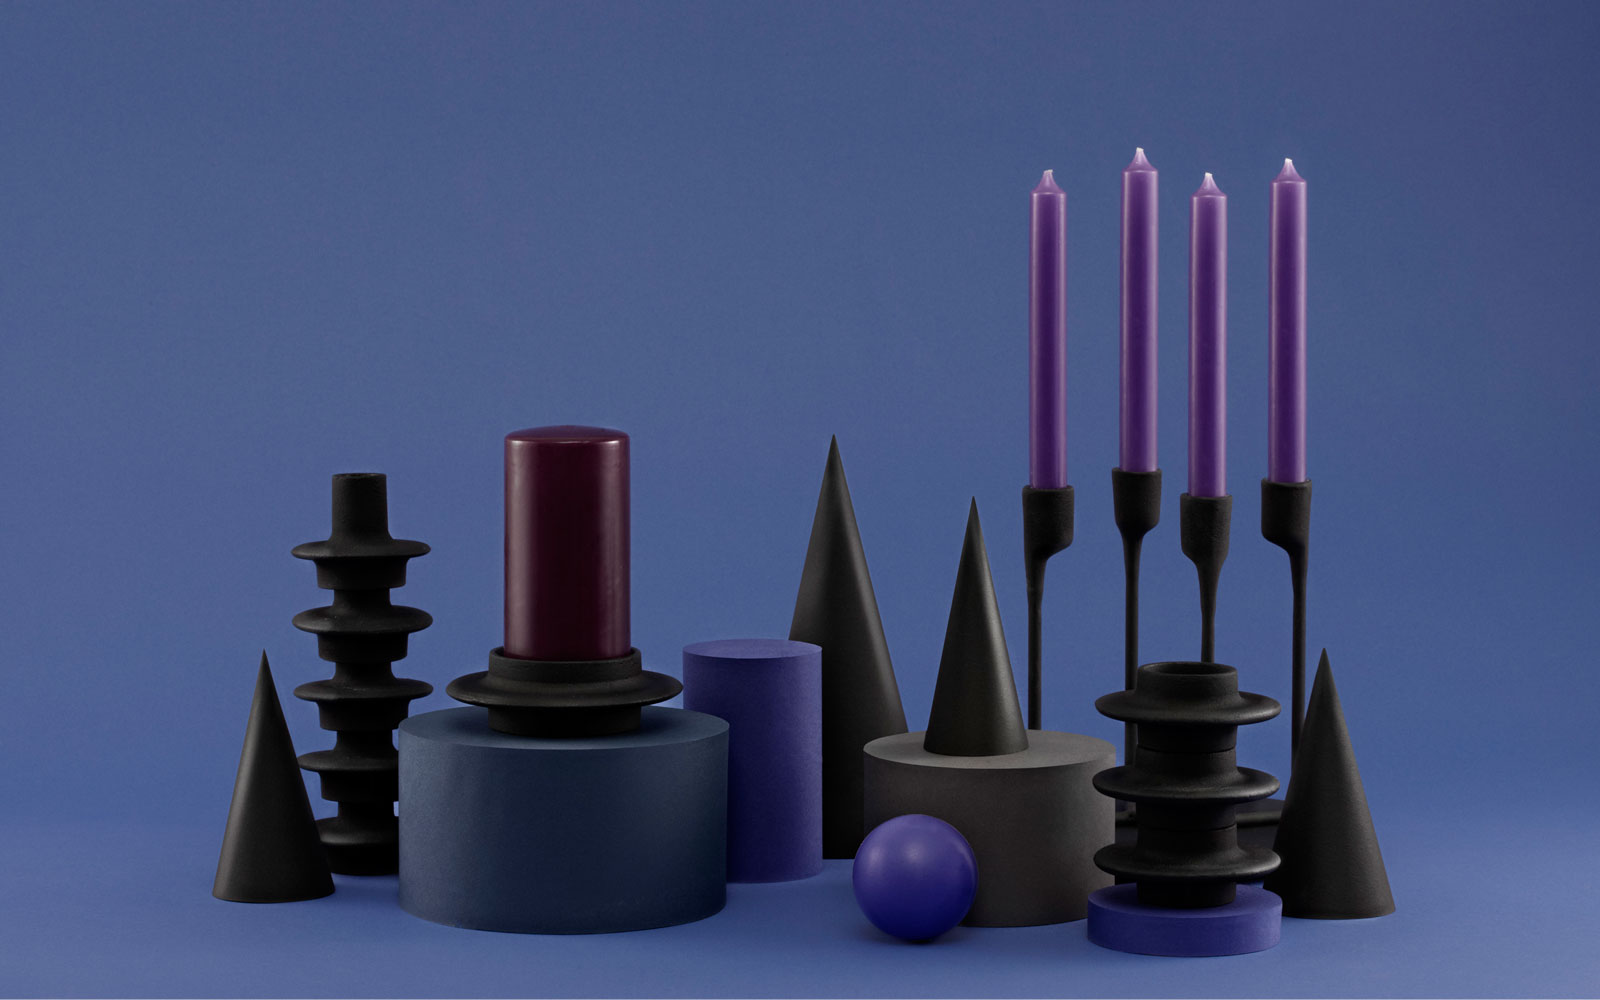 Heima candleholders castiron black familiy function group on blue dark background purple details